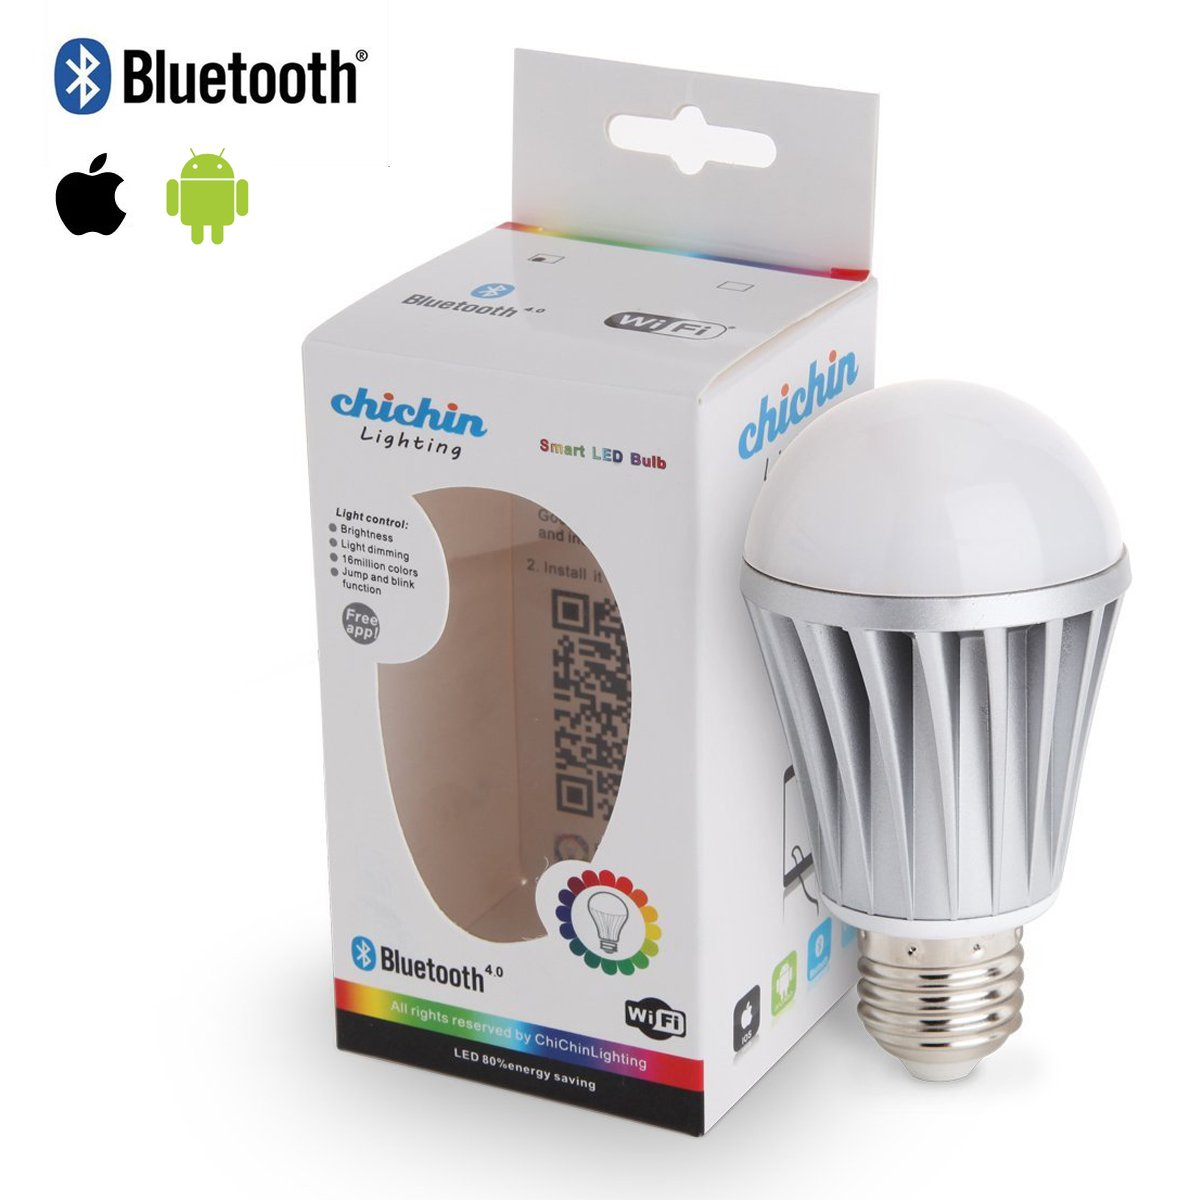 control lighting with iphone. Brilliant Lighting ChiChinLighting Bluetooth LED Light Bulb E27 Smart For  Multicolored Color Changing 7w  And Control Lighting With Iphone